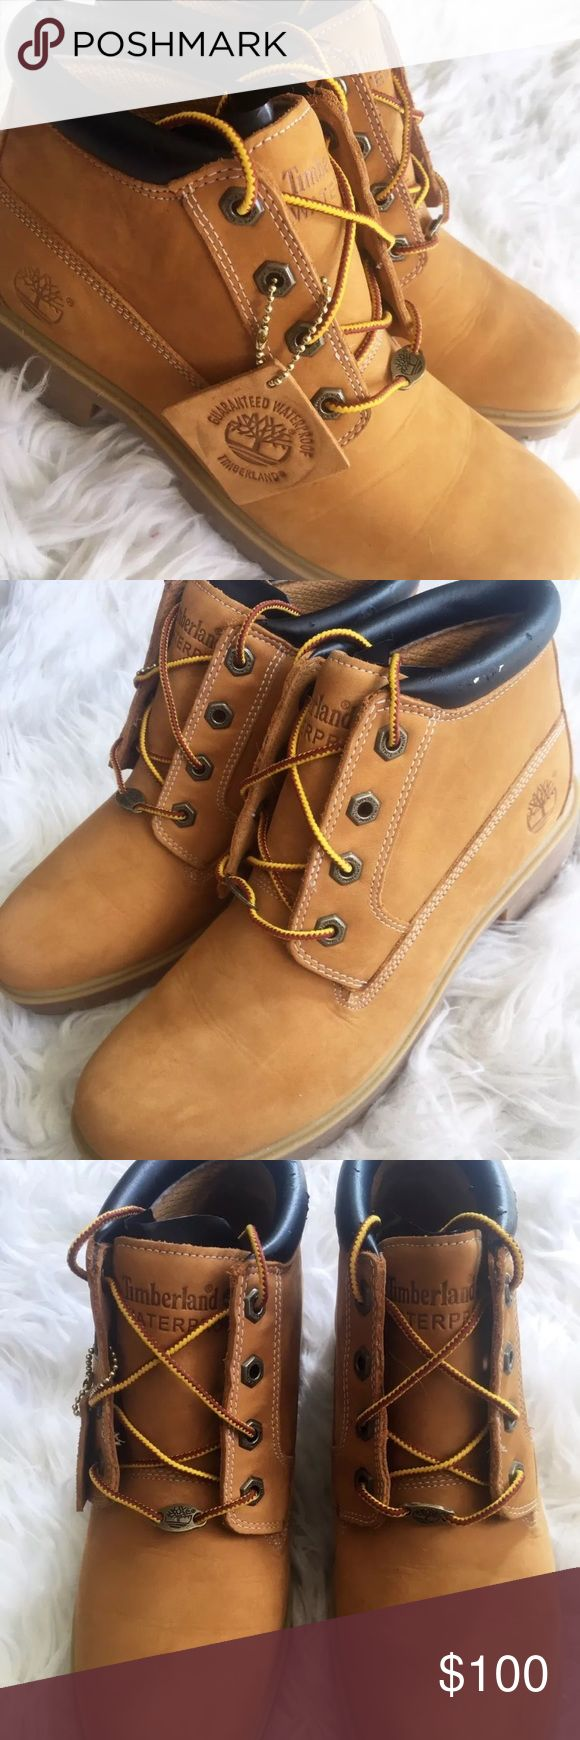 Timberland Nellie Boots Womens 8.5 Wheat Chukka Timberland Nellie Boots Womens 8.5 Wheat Chukka Waterproof Leather/ Some nicks on ankle cushion (see photos) Timberland Shoes Ankle Boots & Booties